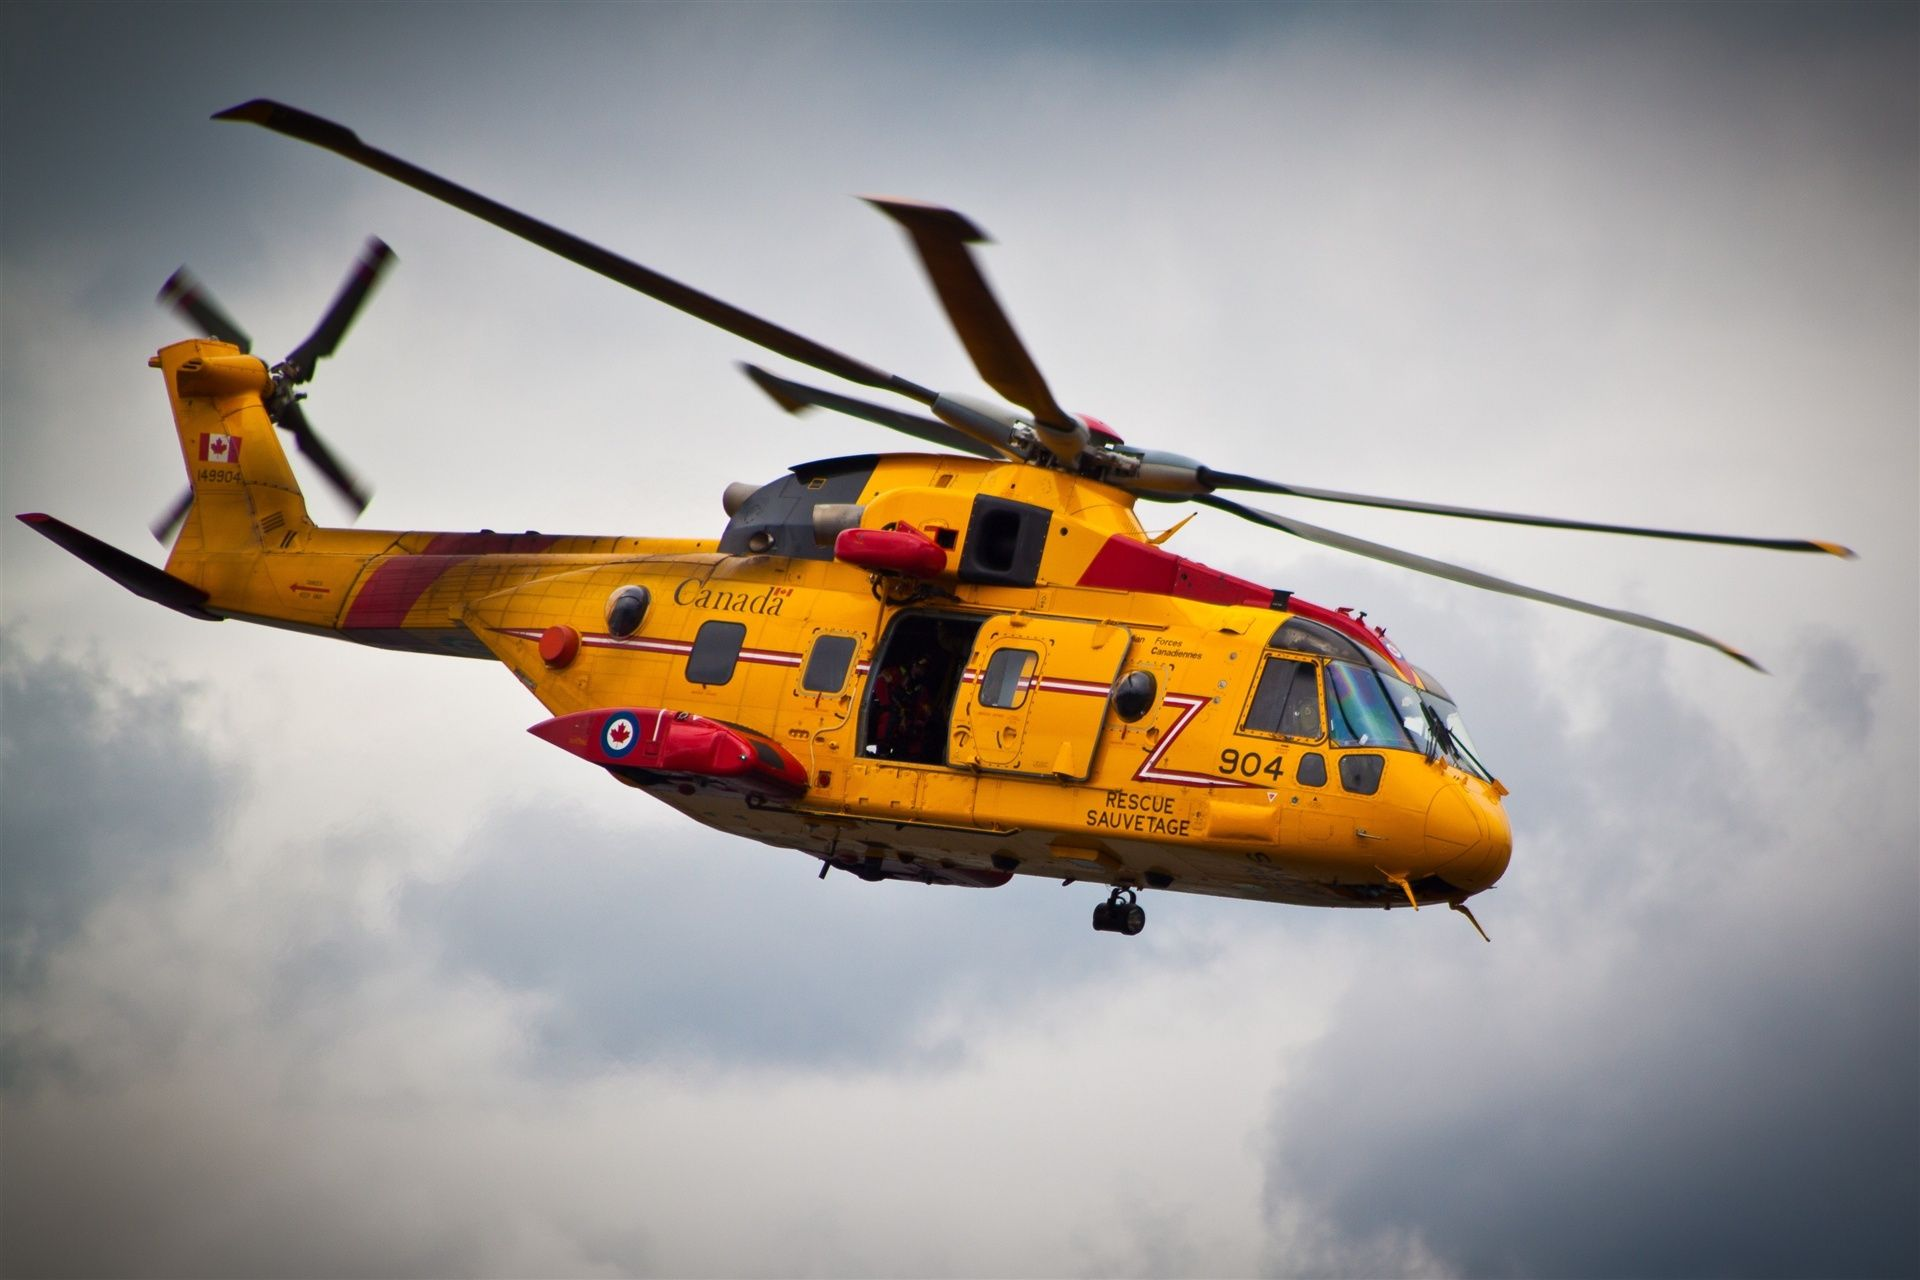 Canada, helicopter, flight, yellow, lifeguard